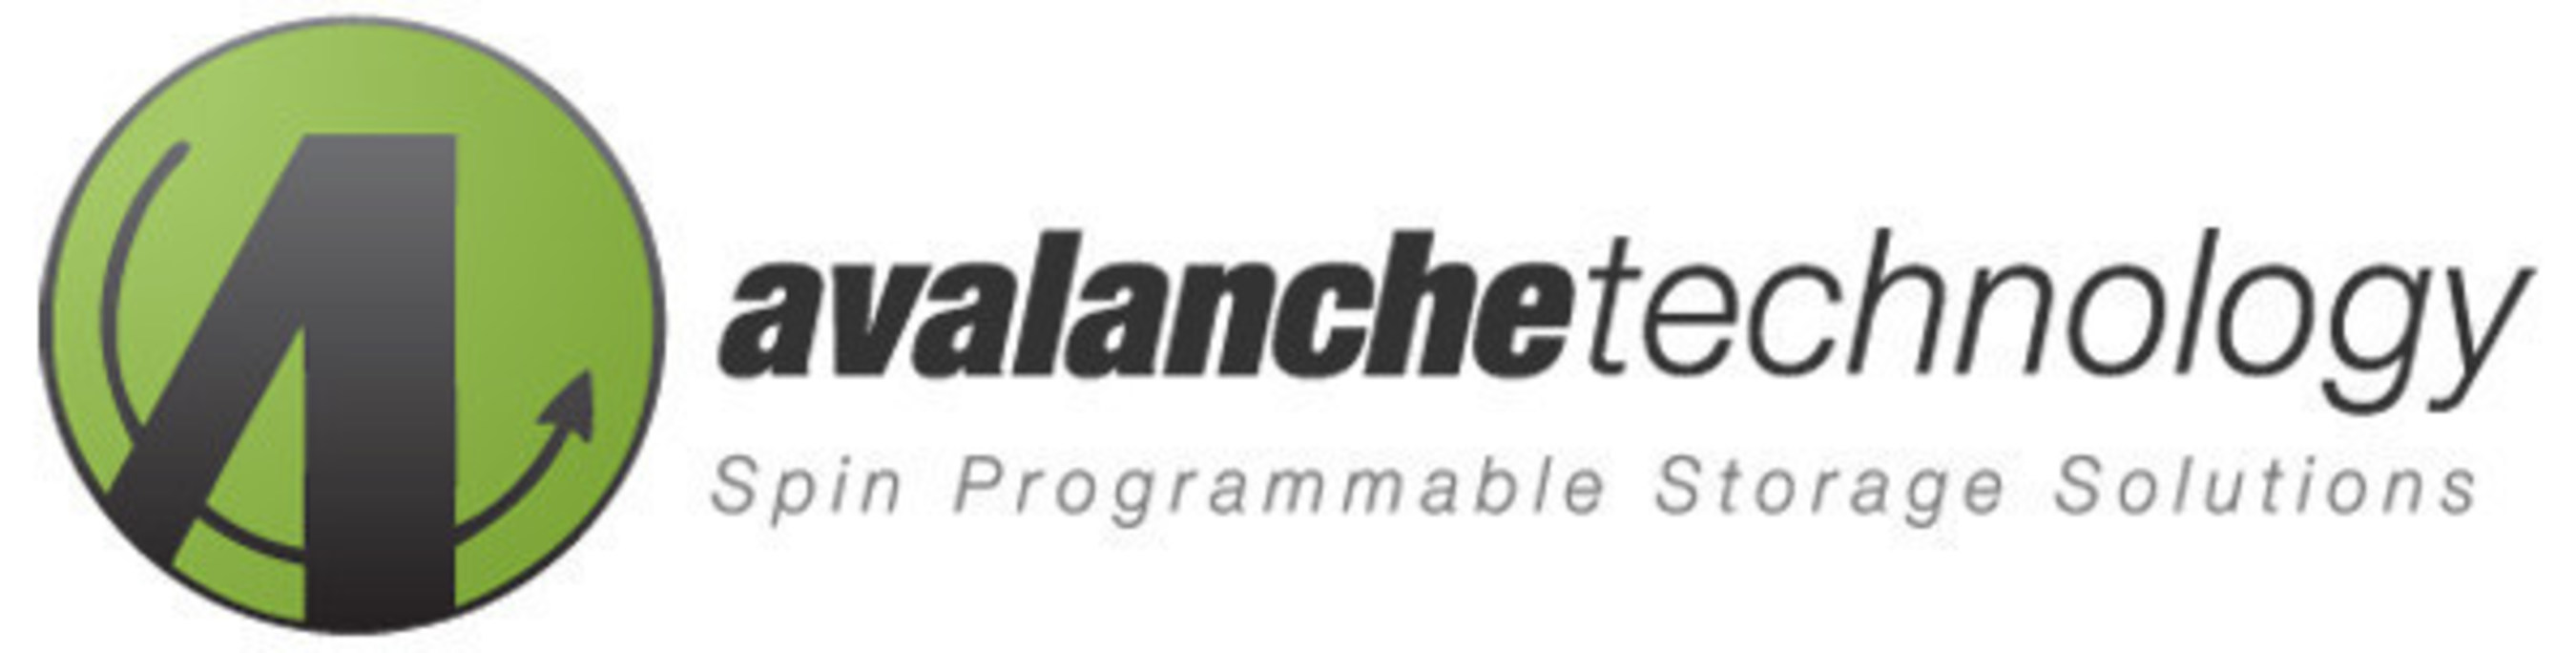 Avalanche Samples Industry's First STT-MRAM Chips On 300MM Wafers Utilizing Advanced Perpendicular